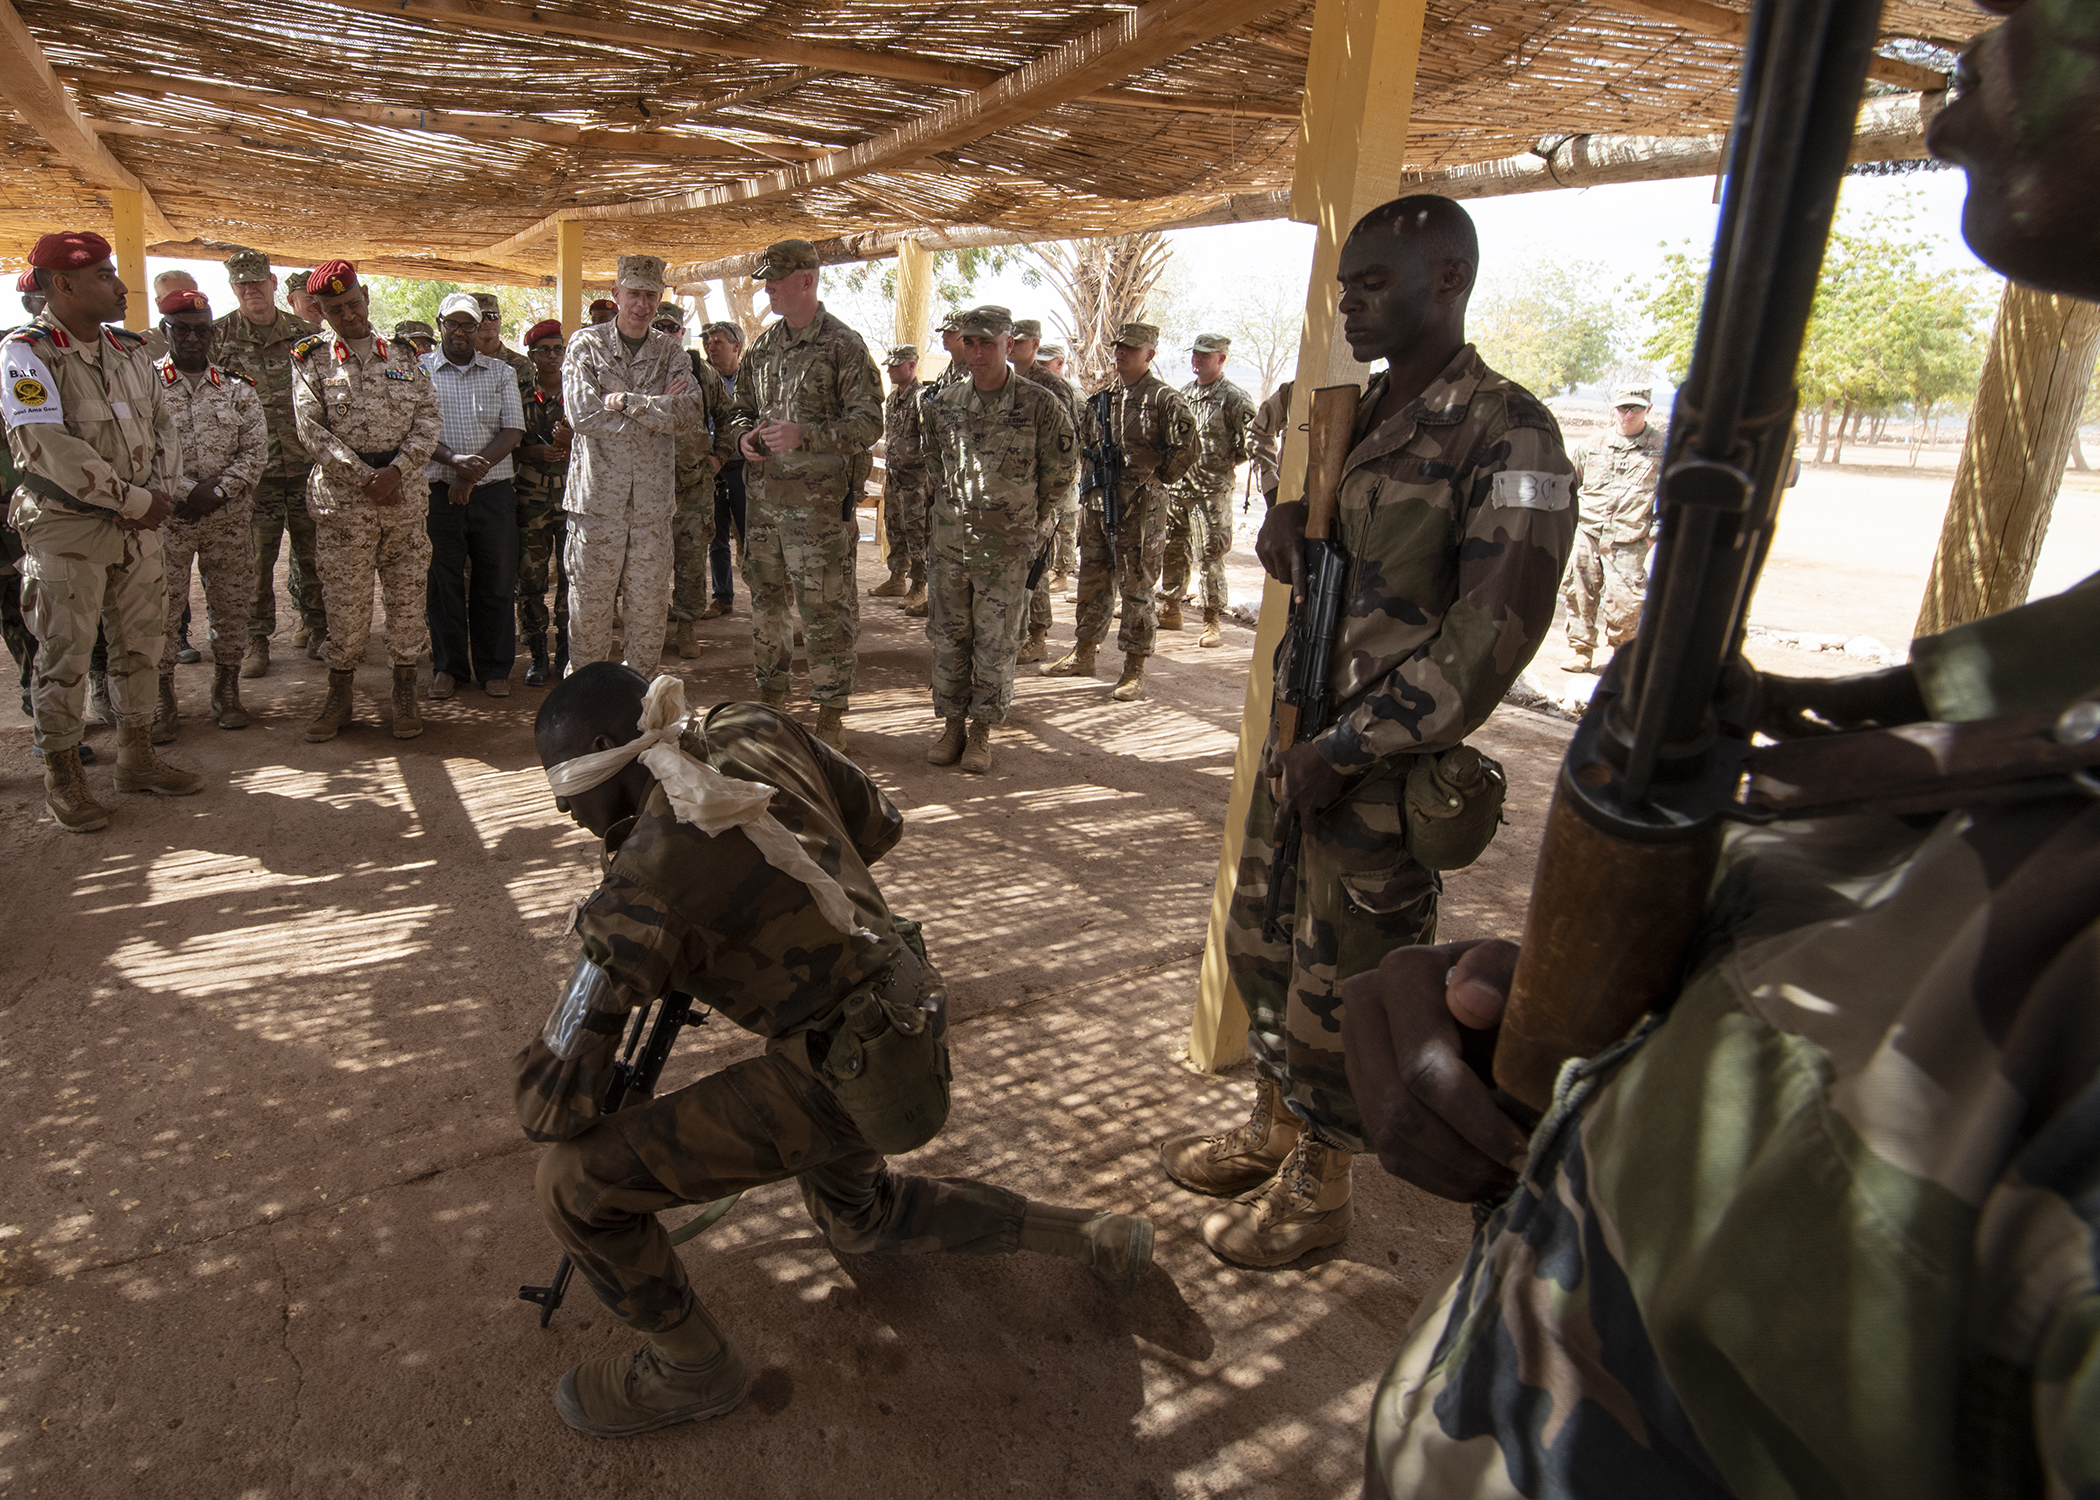 U.S. Marine Corps Gen. Thomas D. Waldhauser, commander of U.S. Africa Command, watches a demonstration by a soldier assigned to the Rapid Intervention Battalion, the Djiboutian army's elite military force, during a visit with senior Djiboutian officials, including Chief of General Staff of the Djibouti Armed Forces Gen. Zakaria Cheikh Ibrahim, at a training base in Djibouti, March 21, 2019. Waldhauser visited in order to discuss the growth and development of Djiboutian security forces. (U.S. Air Force photo by Tech. Sgt. Shawn Nickel)